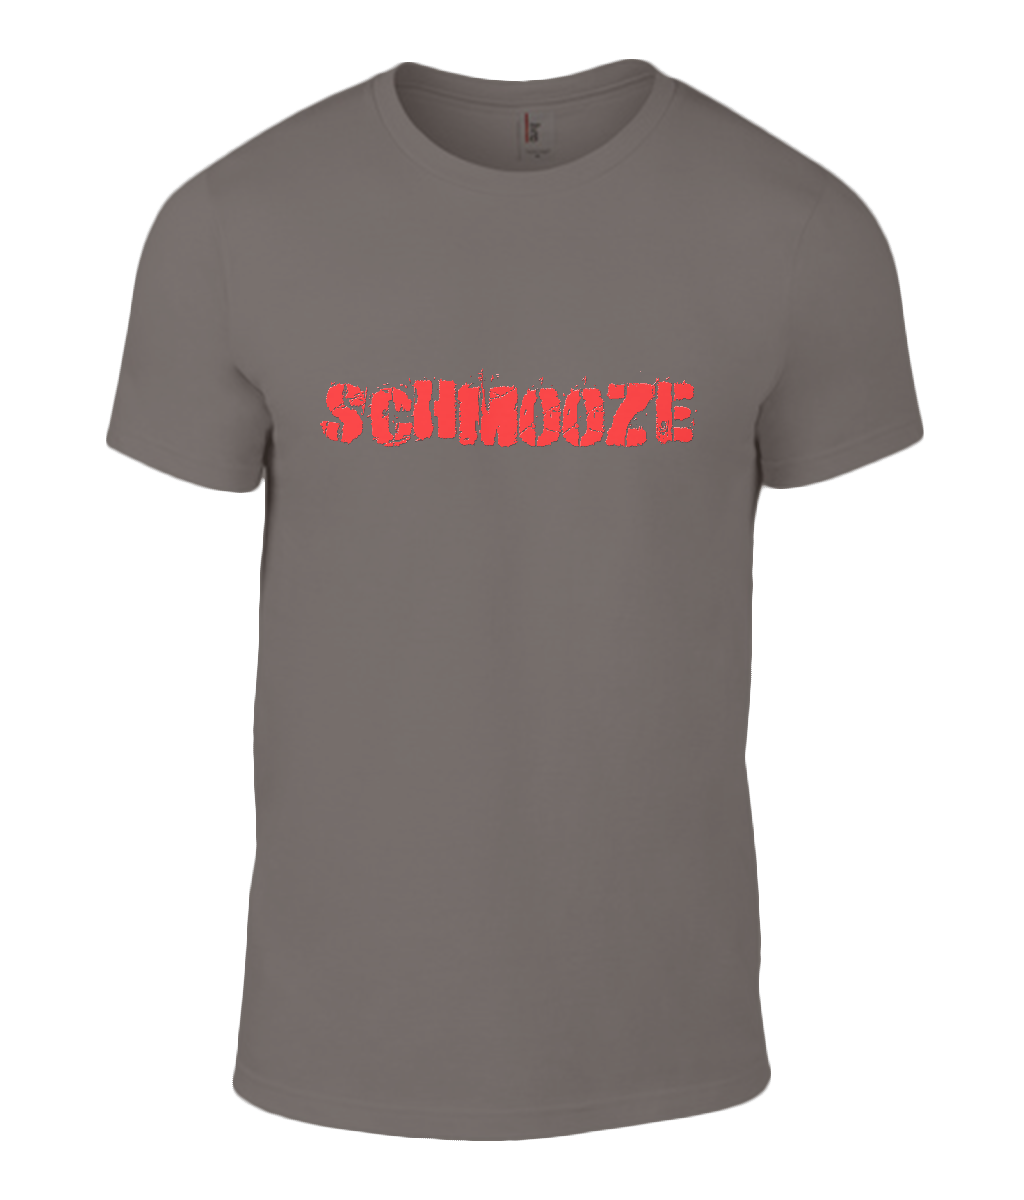 Round Neck T-Shirt - Schmooze - Lokshen Pudding UK - Brown